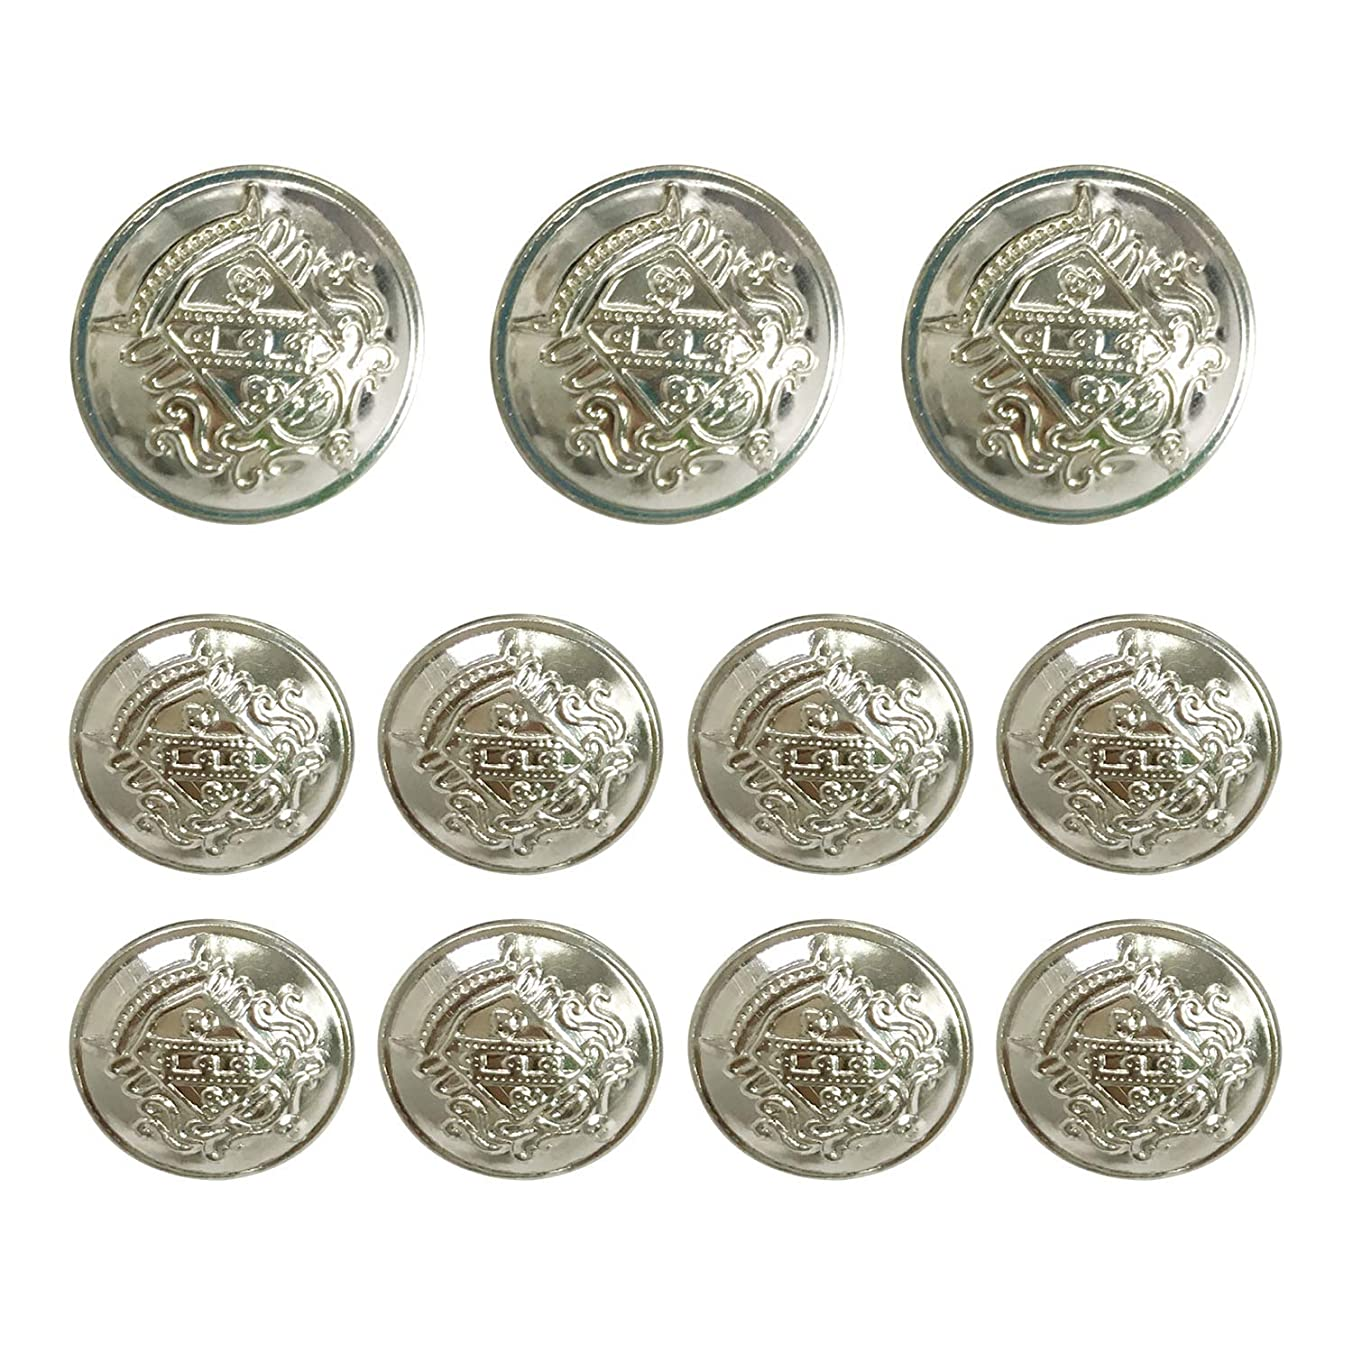 Grekywin Vintage Metal Button Brass High-Grade Buttons for Jeans, Coat, Blazer, Suits, Jacket etc. Exotic Customs Style (Silver)